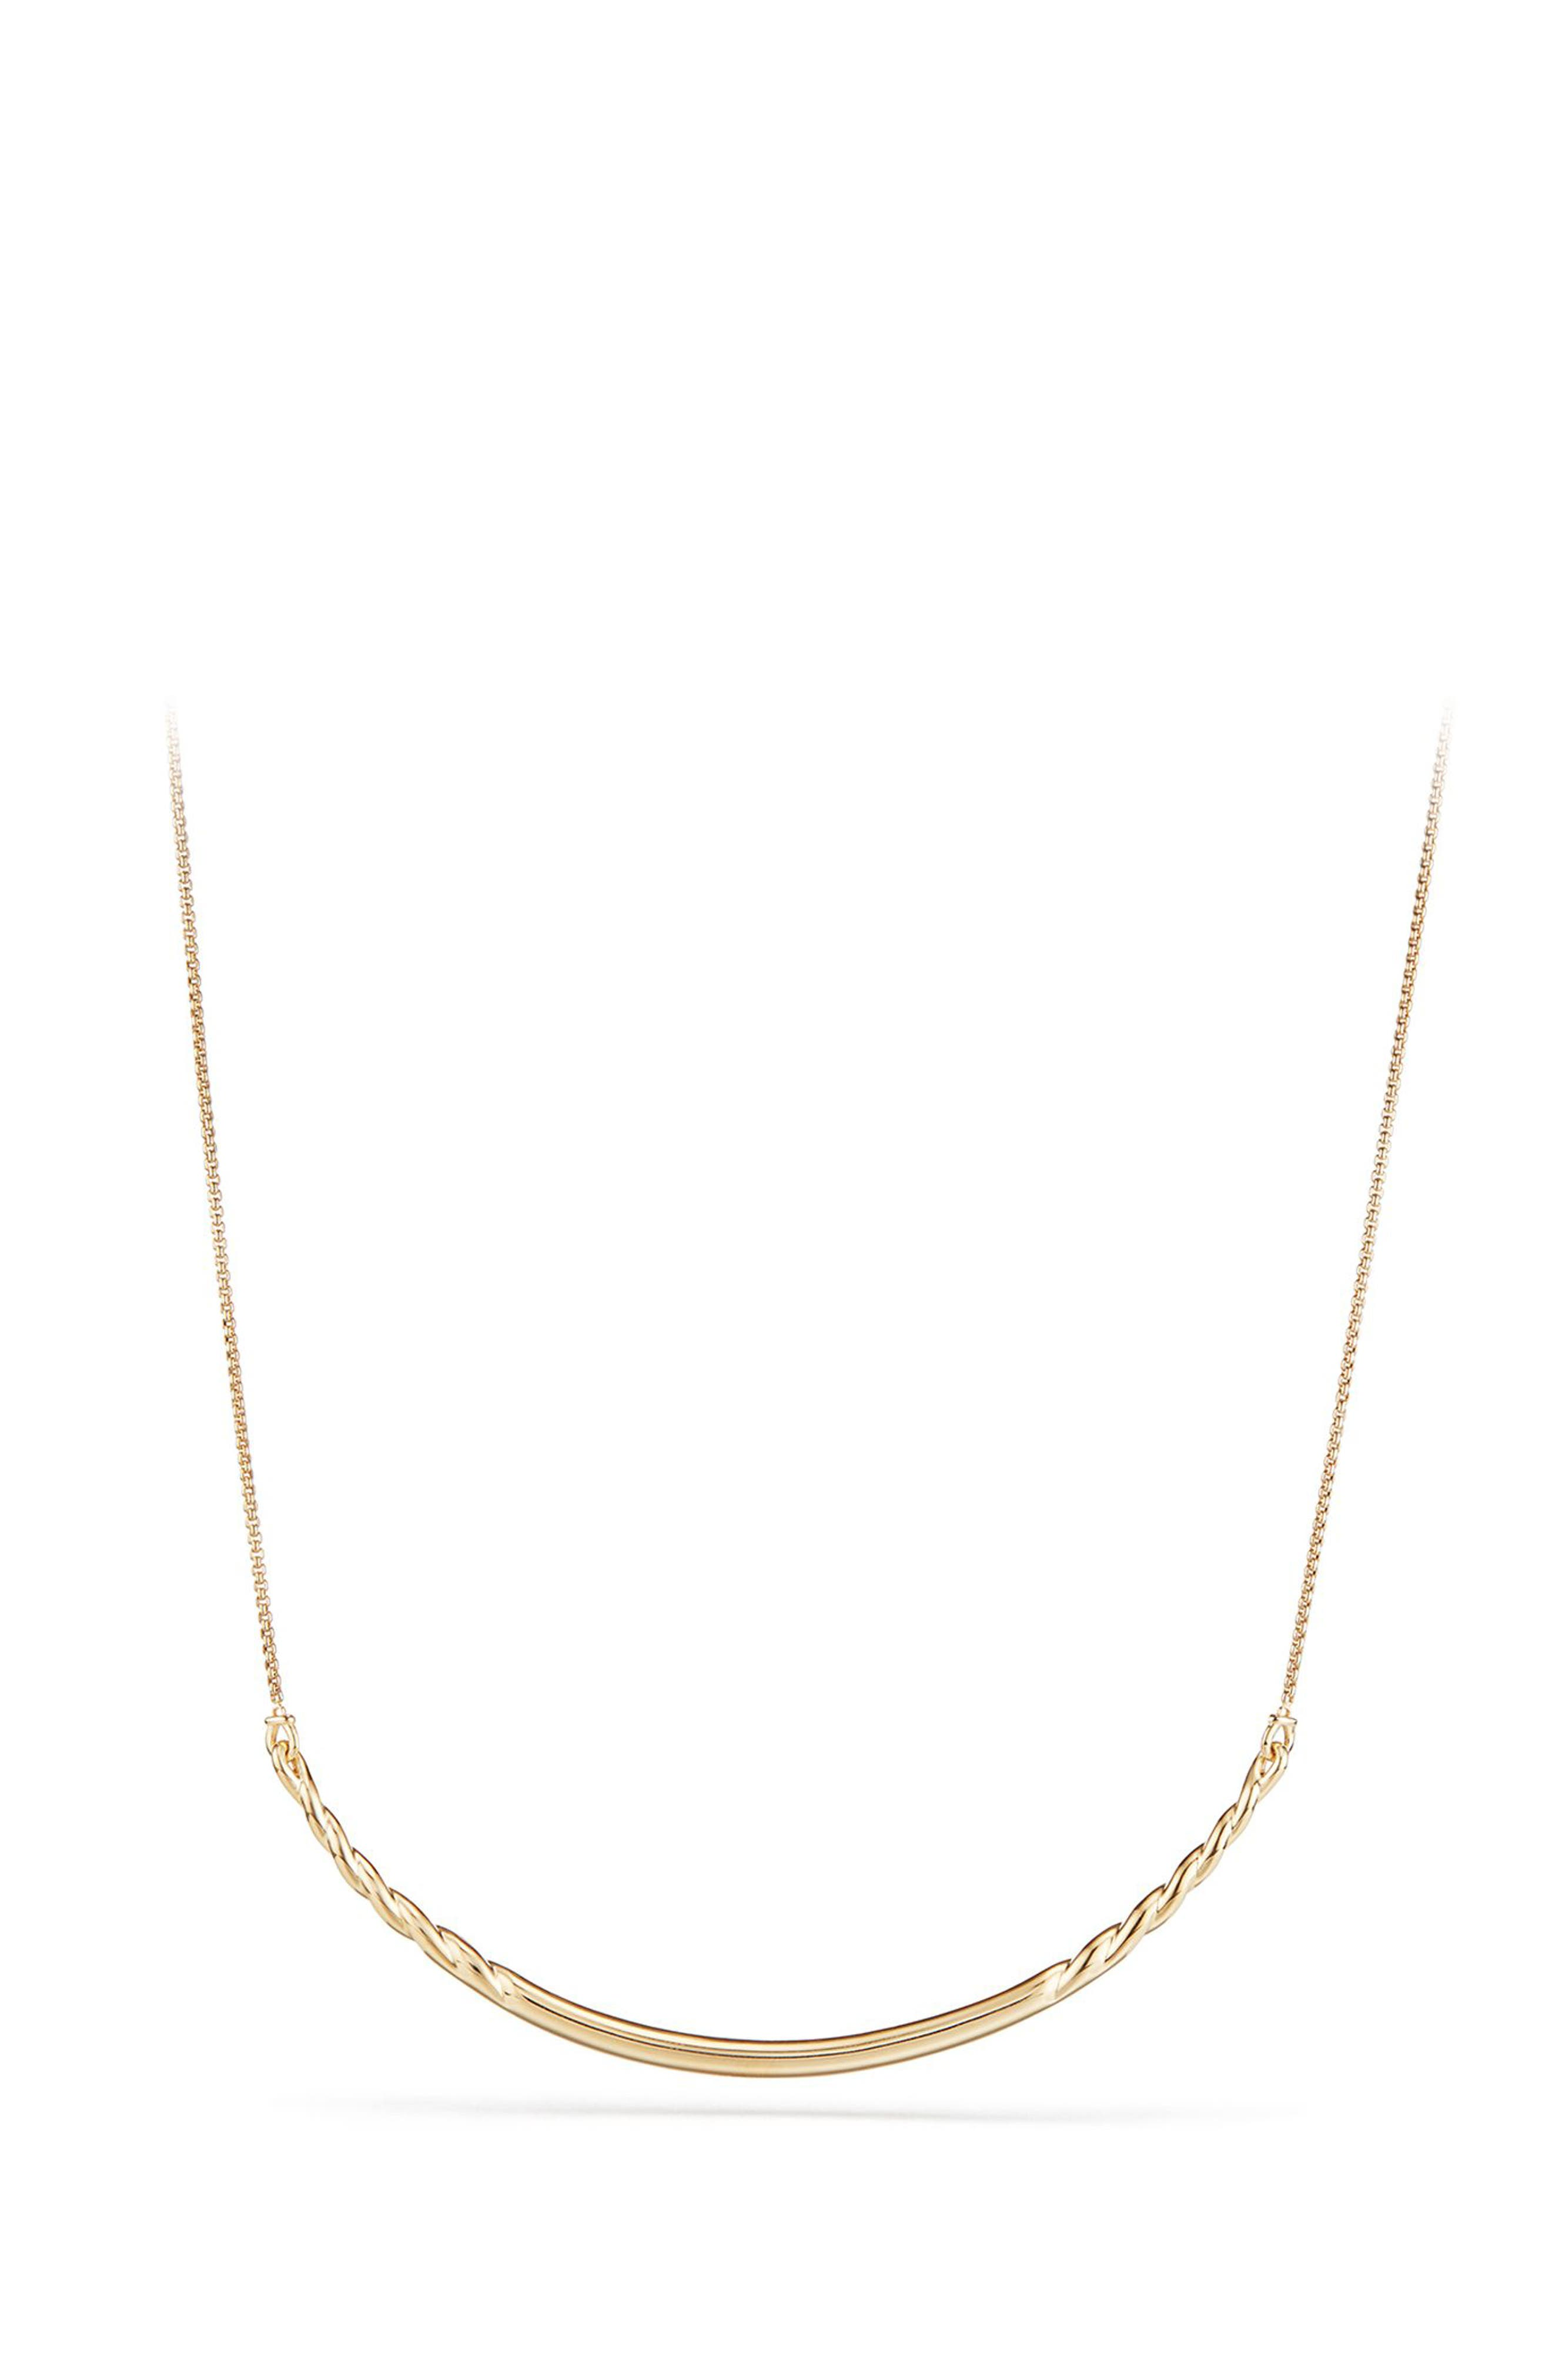 Pure Form Collar Necklace in 18K Gold,                         Main,                         color, Yellow Gold